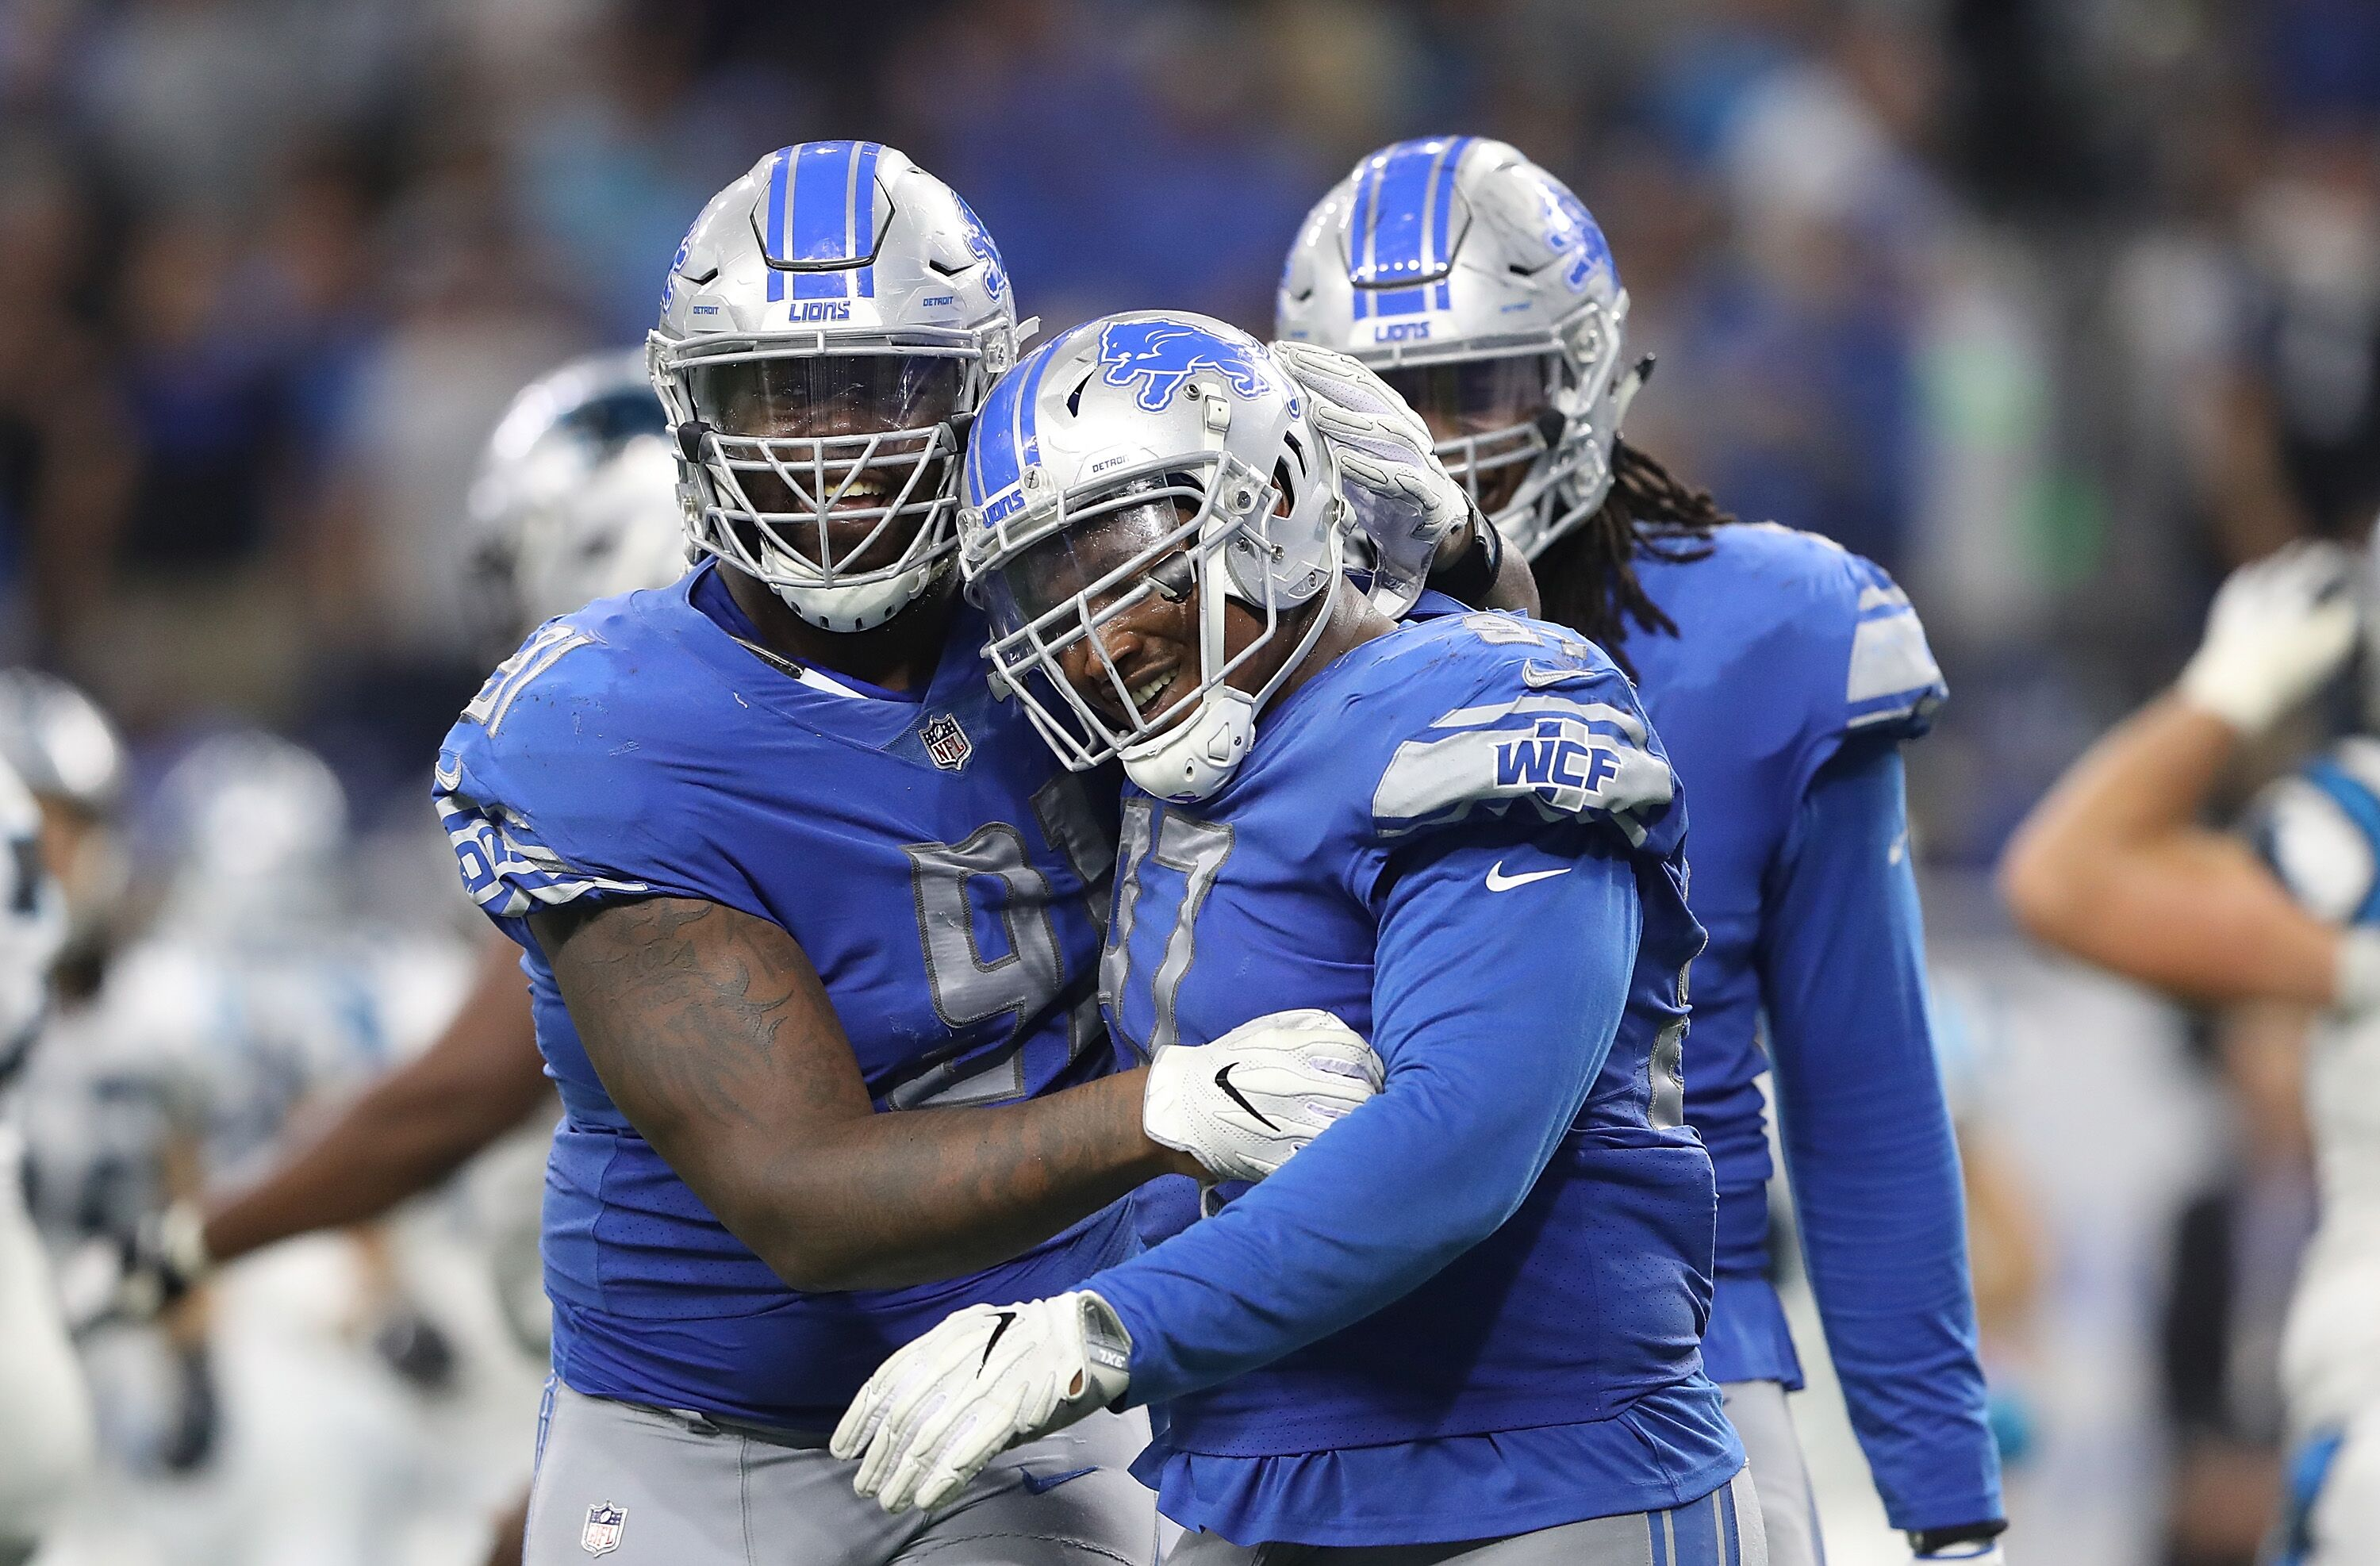 the reasons why fans should be optimistic about the future of the detroit lions Ndamukong suh has lions fans feeling optimistic after a season in which he won the defensive rookie of the year award and the lions won their last four games but you'd be hard-pressed to find.